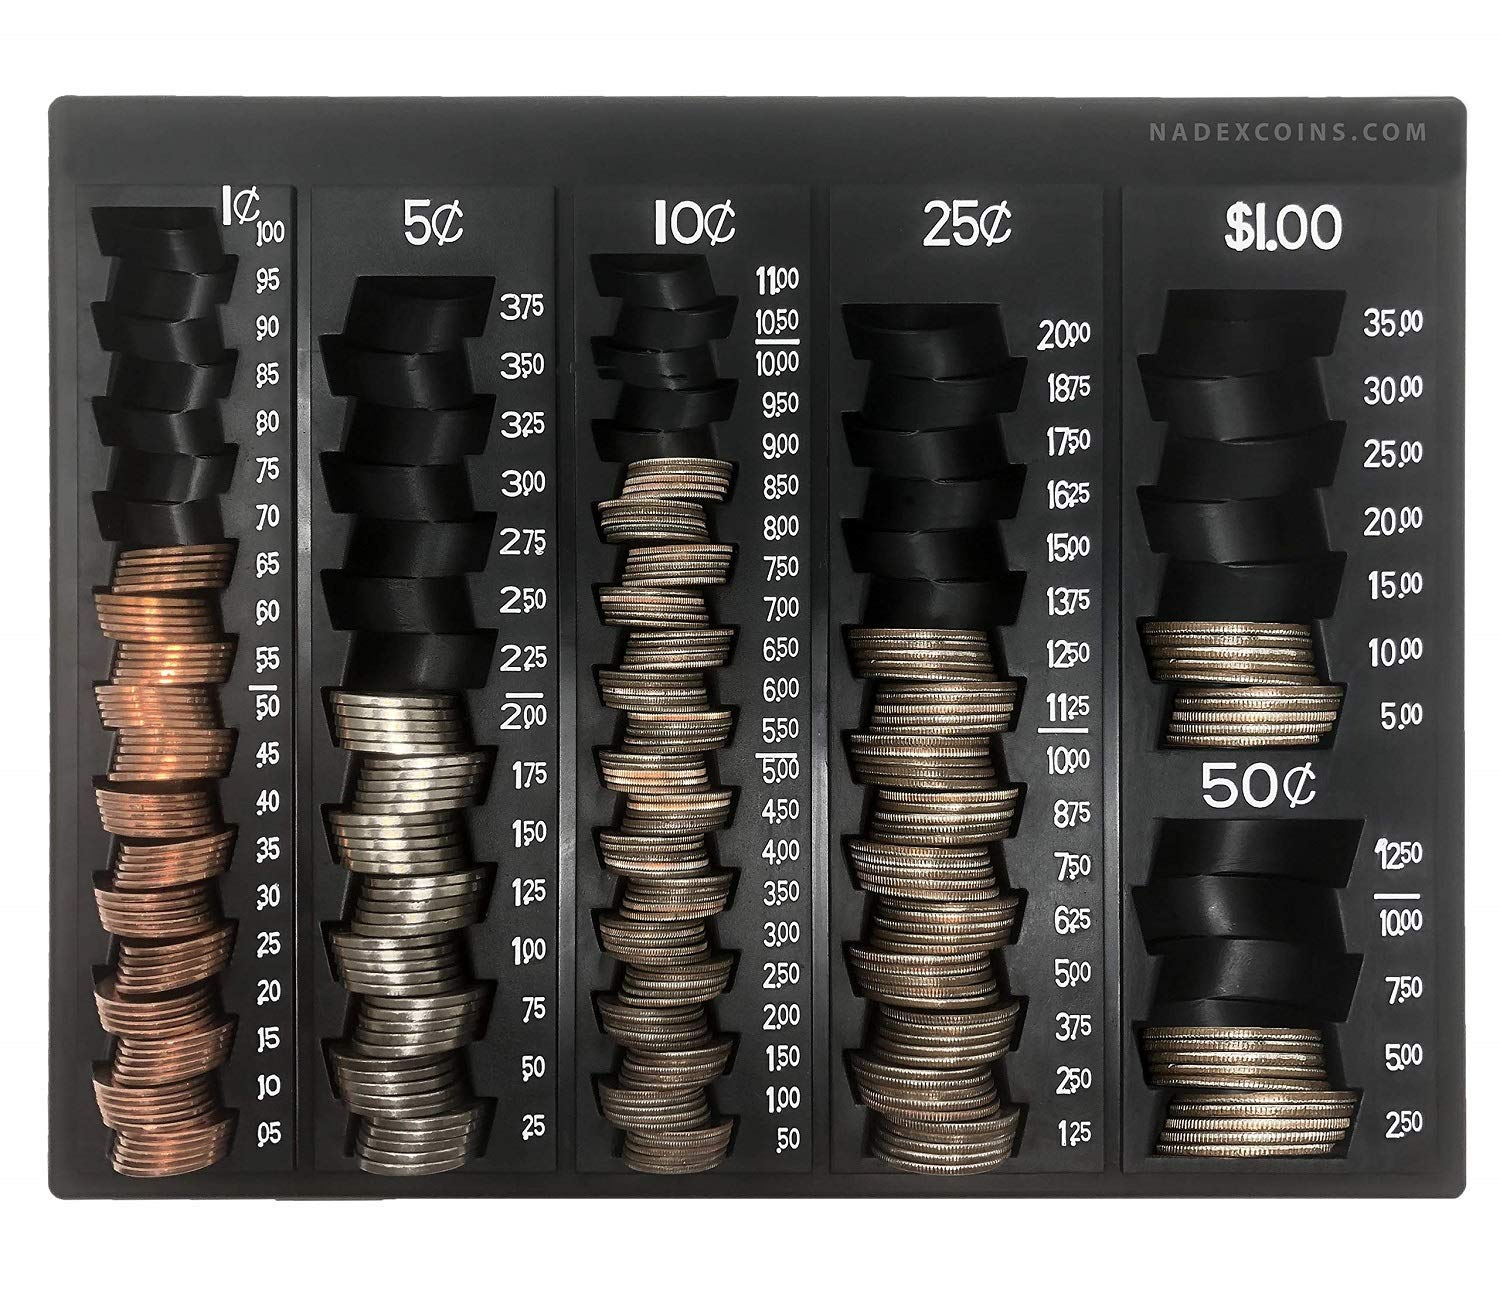 Nadex Coin Handling Tray | Bank Teller and Change Counter Coin Counting and Sorting Tray with 6 Compartments for U.S. Coins with Cover - 32 Coin Wrappers Included (Black) by Nadex